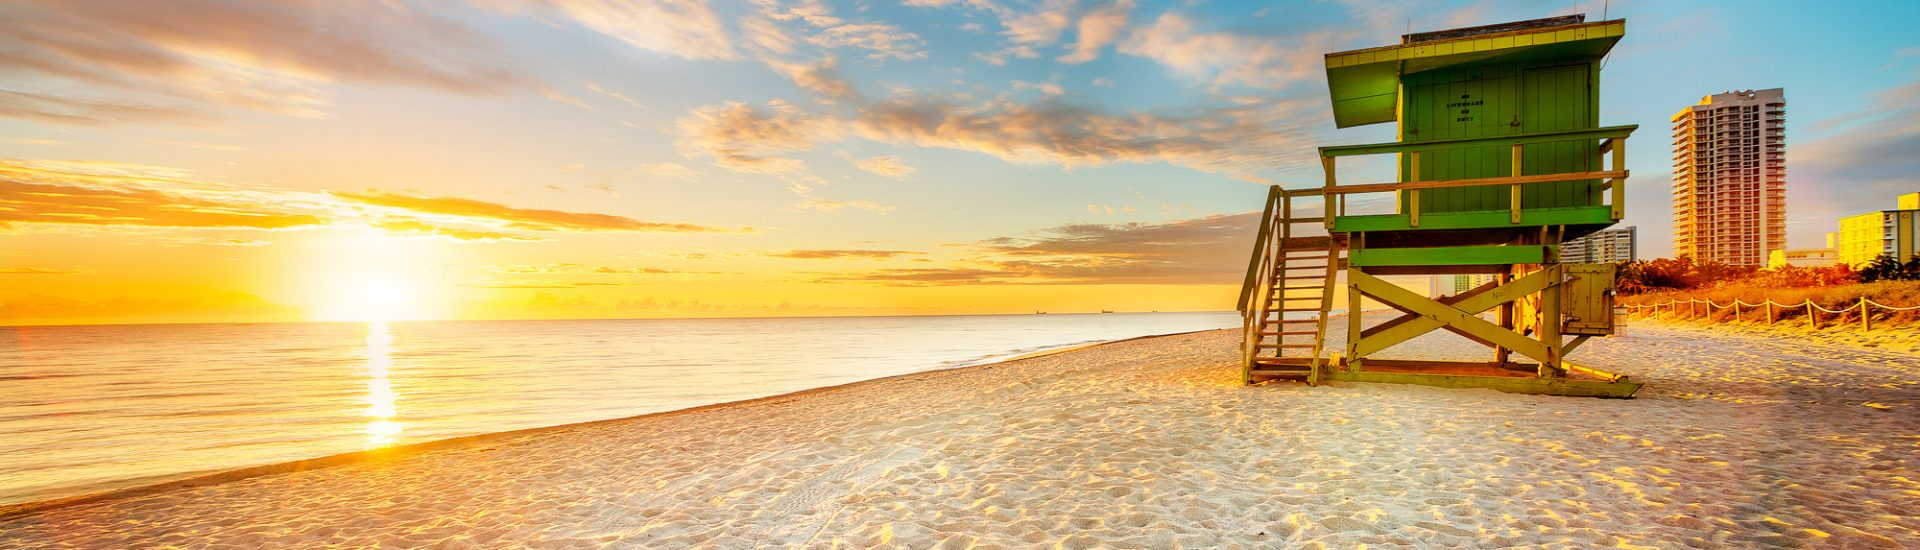 Miami South Beach is among our favorite places to visit in Florida and holds many things to do in Florida right on the beach. It is where to go in Florida while on vacation.